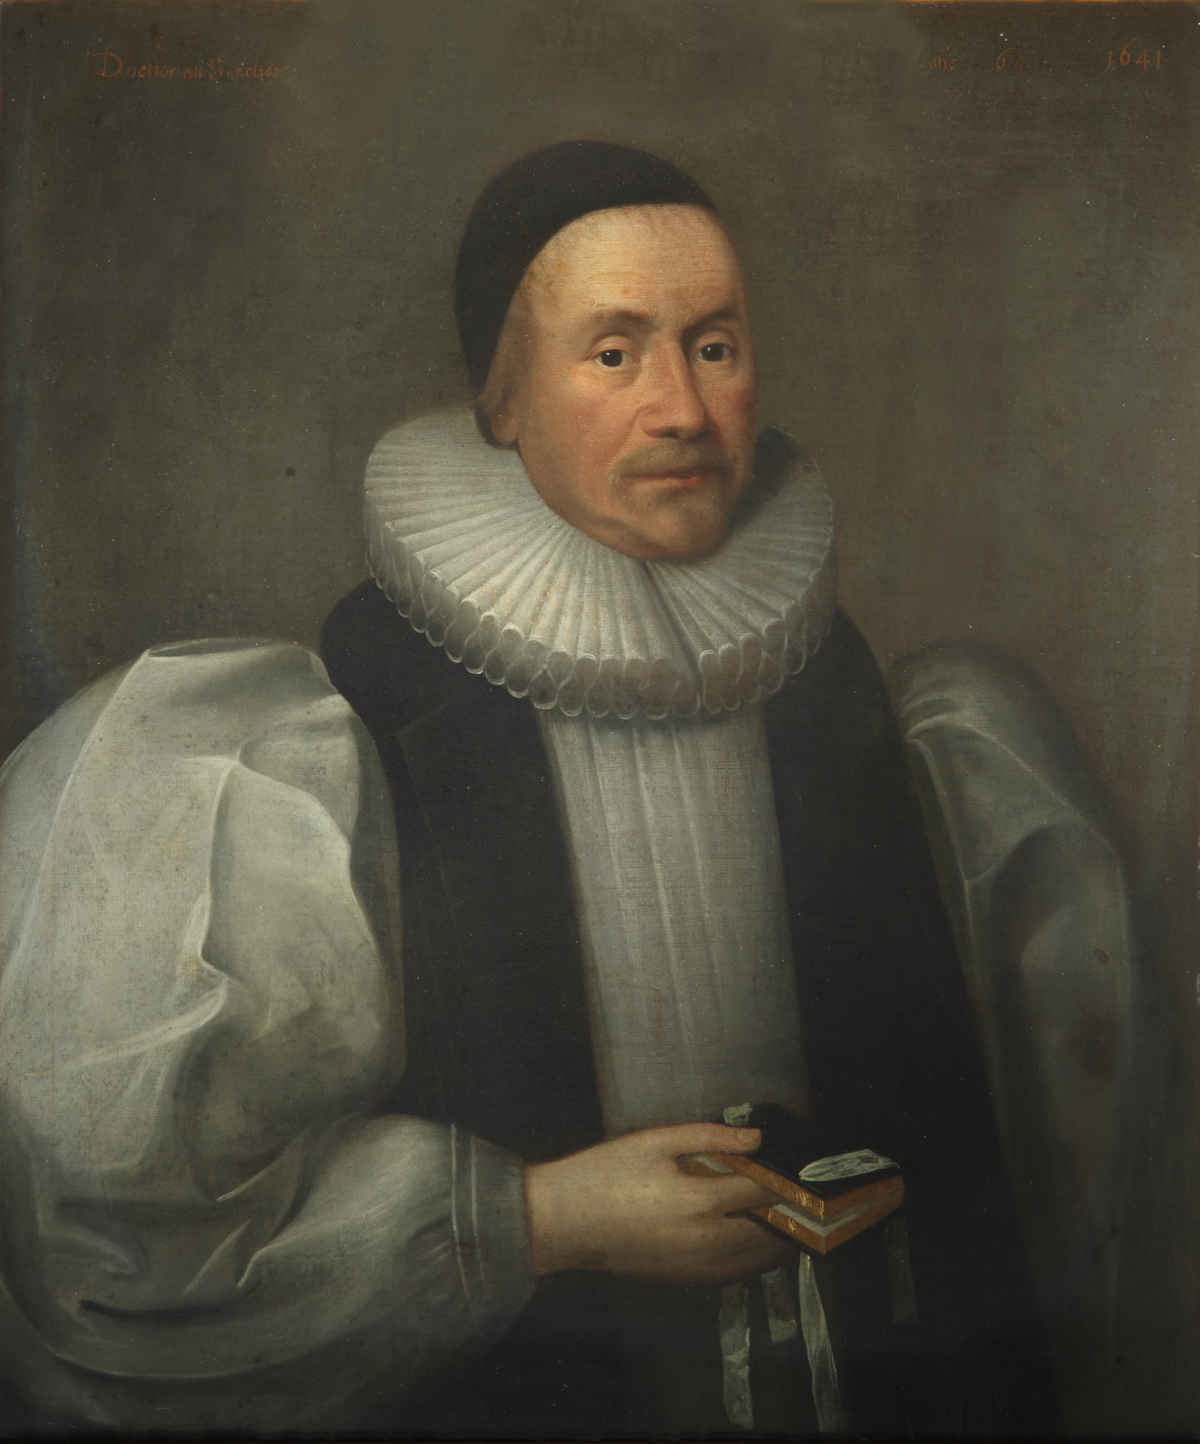 Portrait of Archbishop Ussher by Cornelis Janssens van Ceulen, 1641